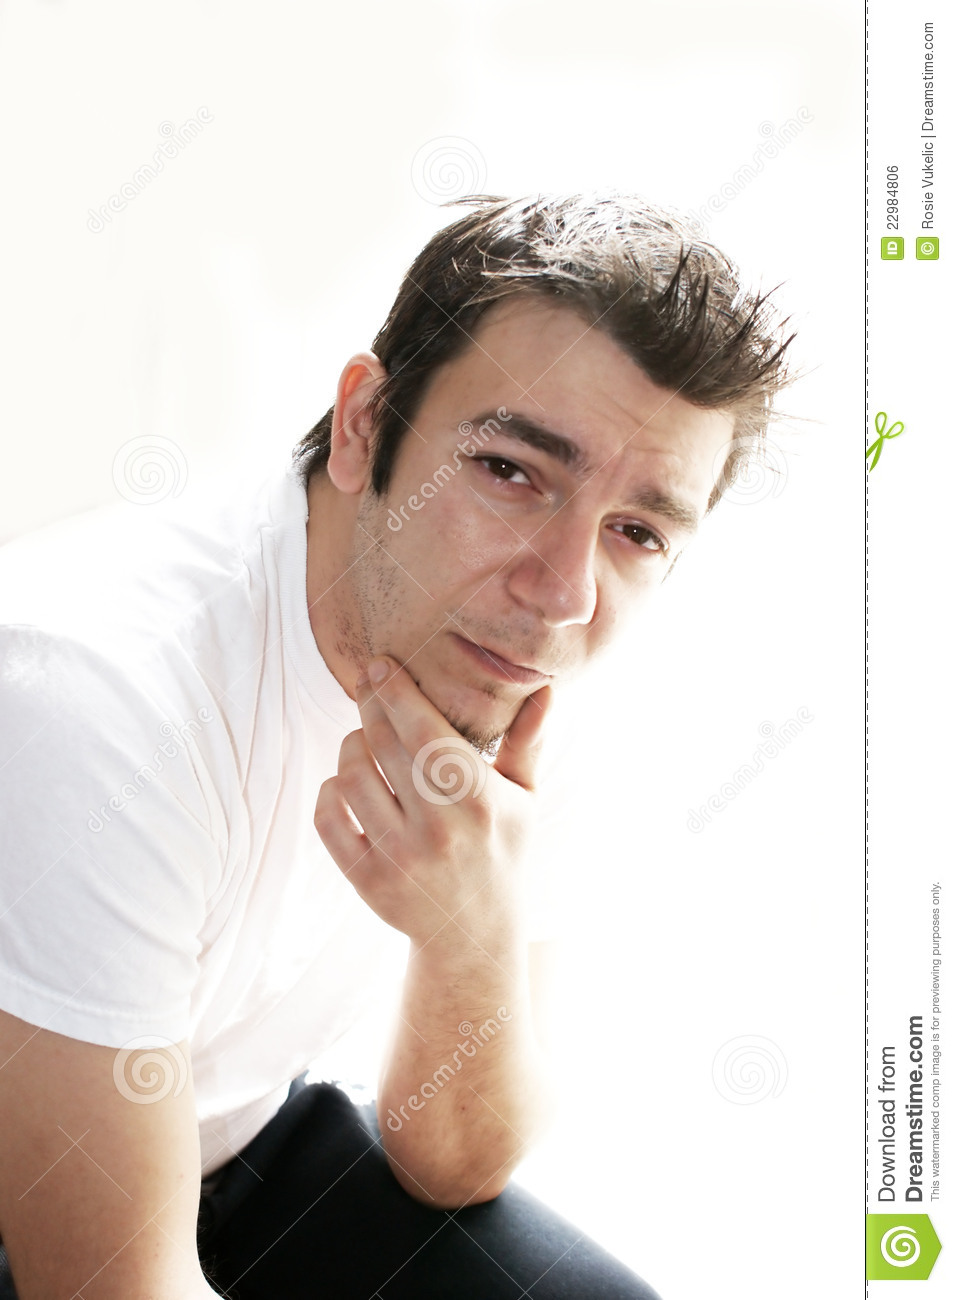 Uncertain man in white shirt royalty free stock image for Man in white shirt